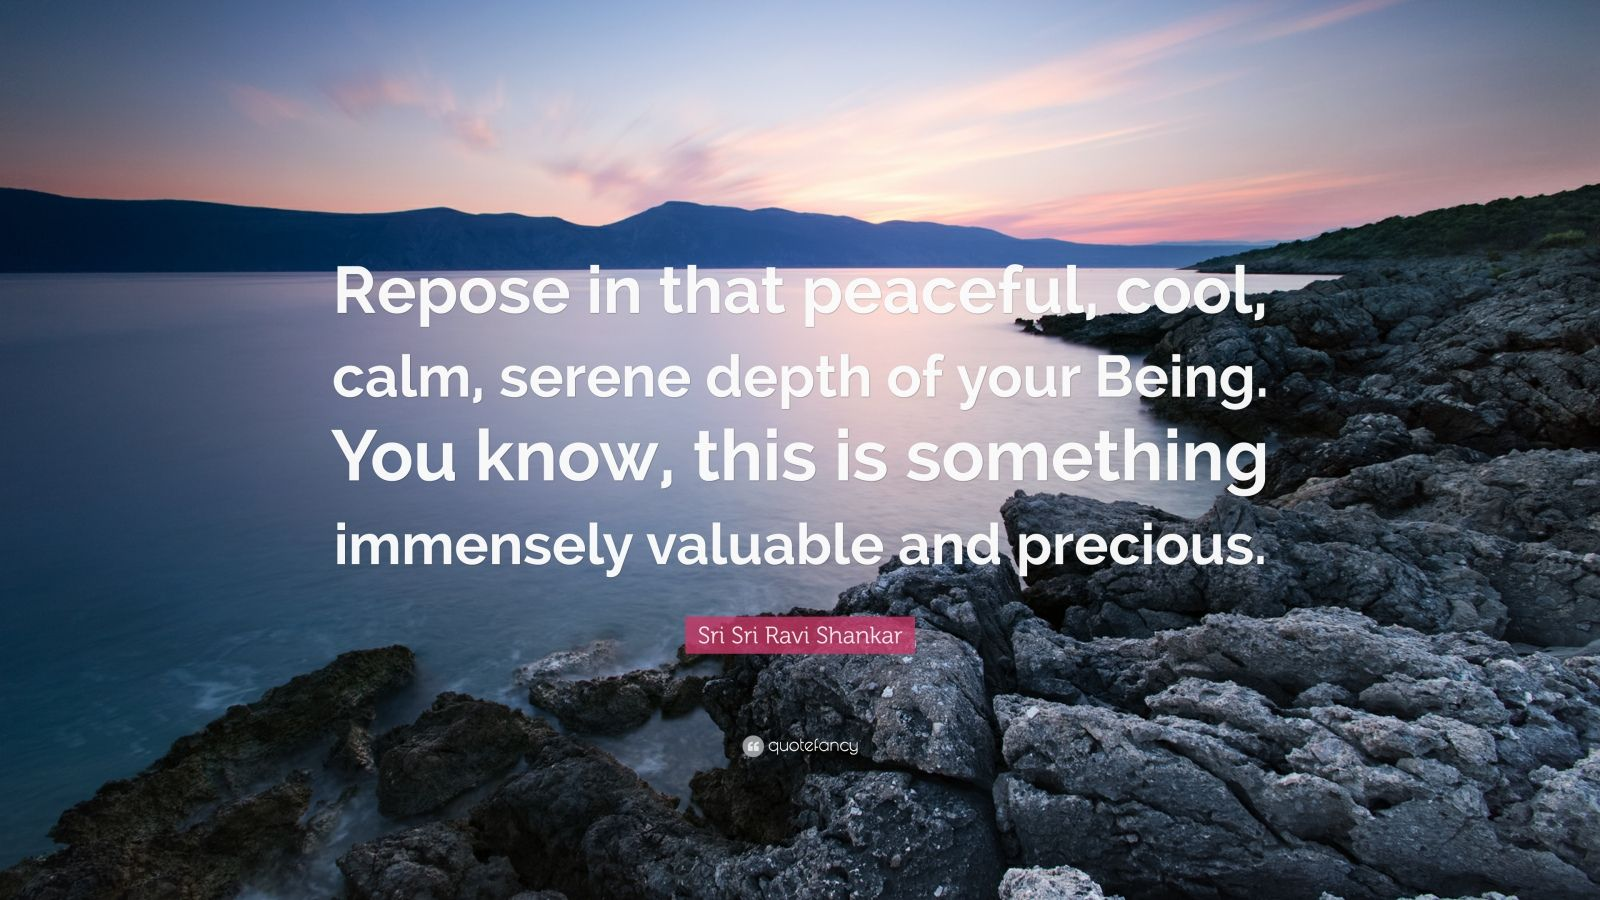 """Sri Sri Ravi Shankar Quote: """"Repose in that peaceful, cool, calm, serene depth of your Being. You know, this is something immensely valuable and precious."""""""